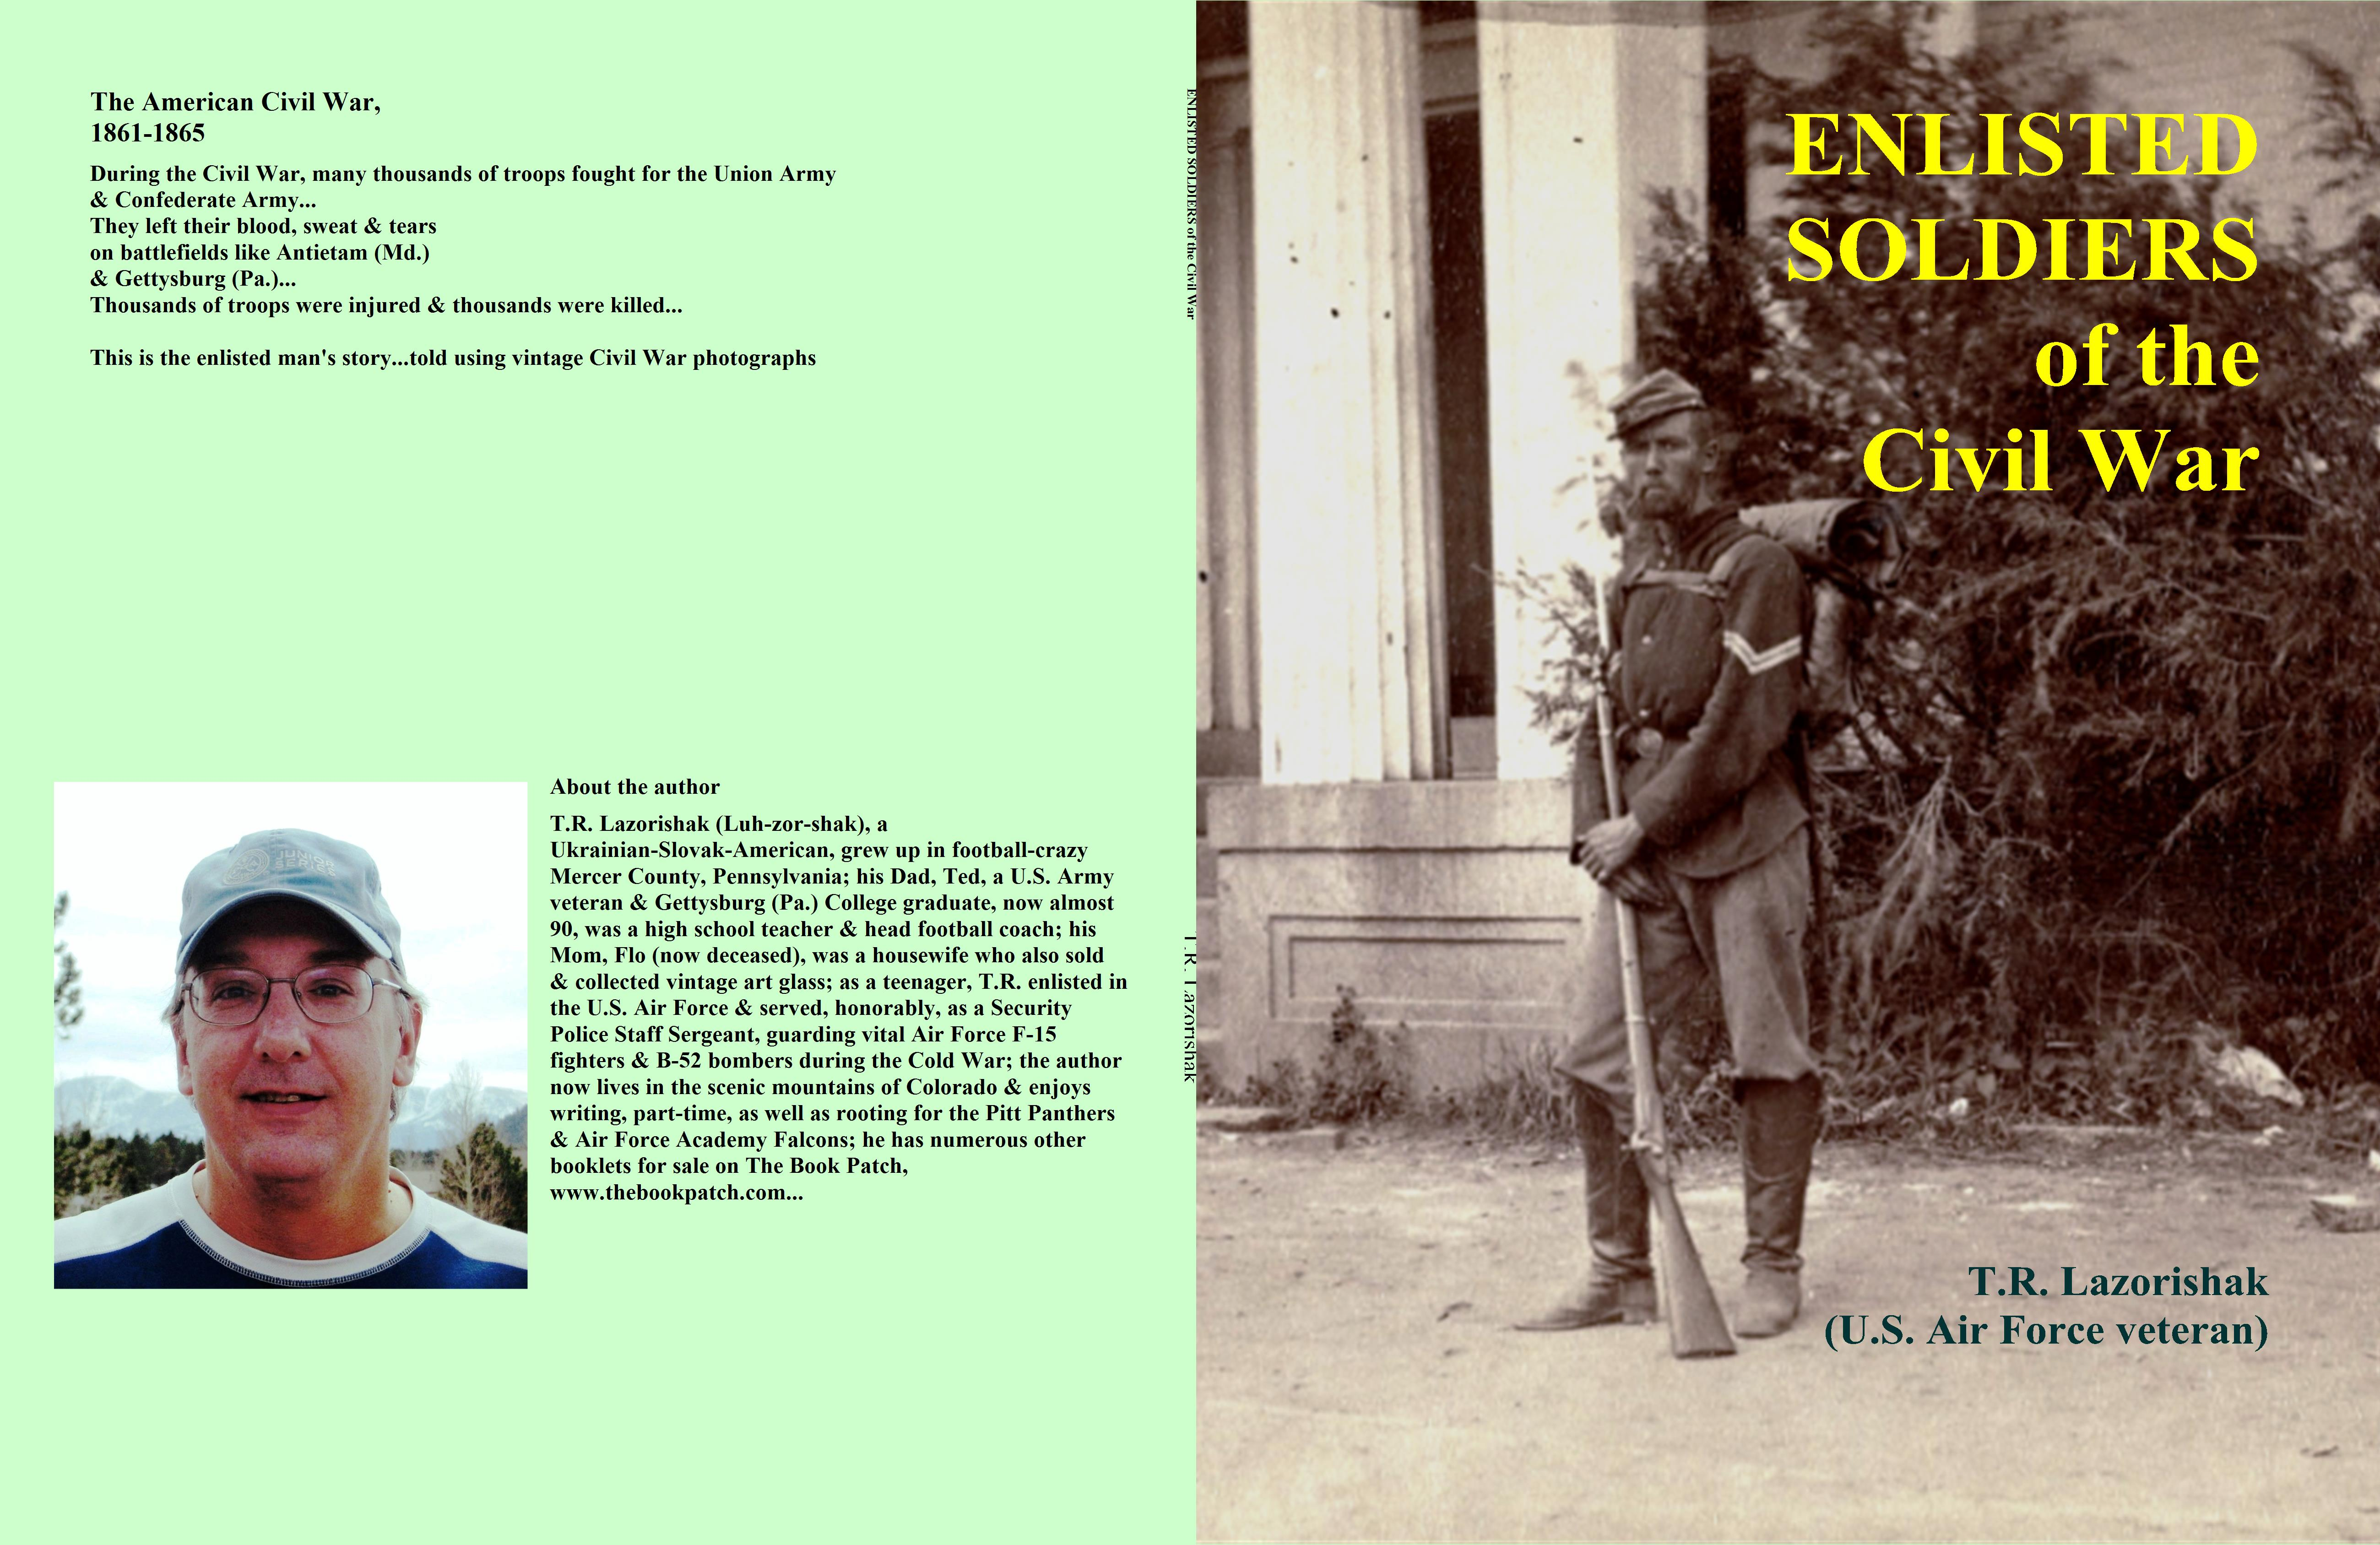 ENLISTED SOLDIERS of the Civil War cover image